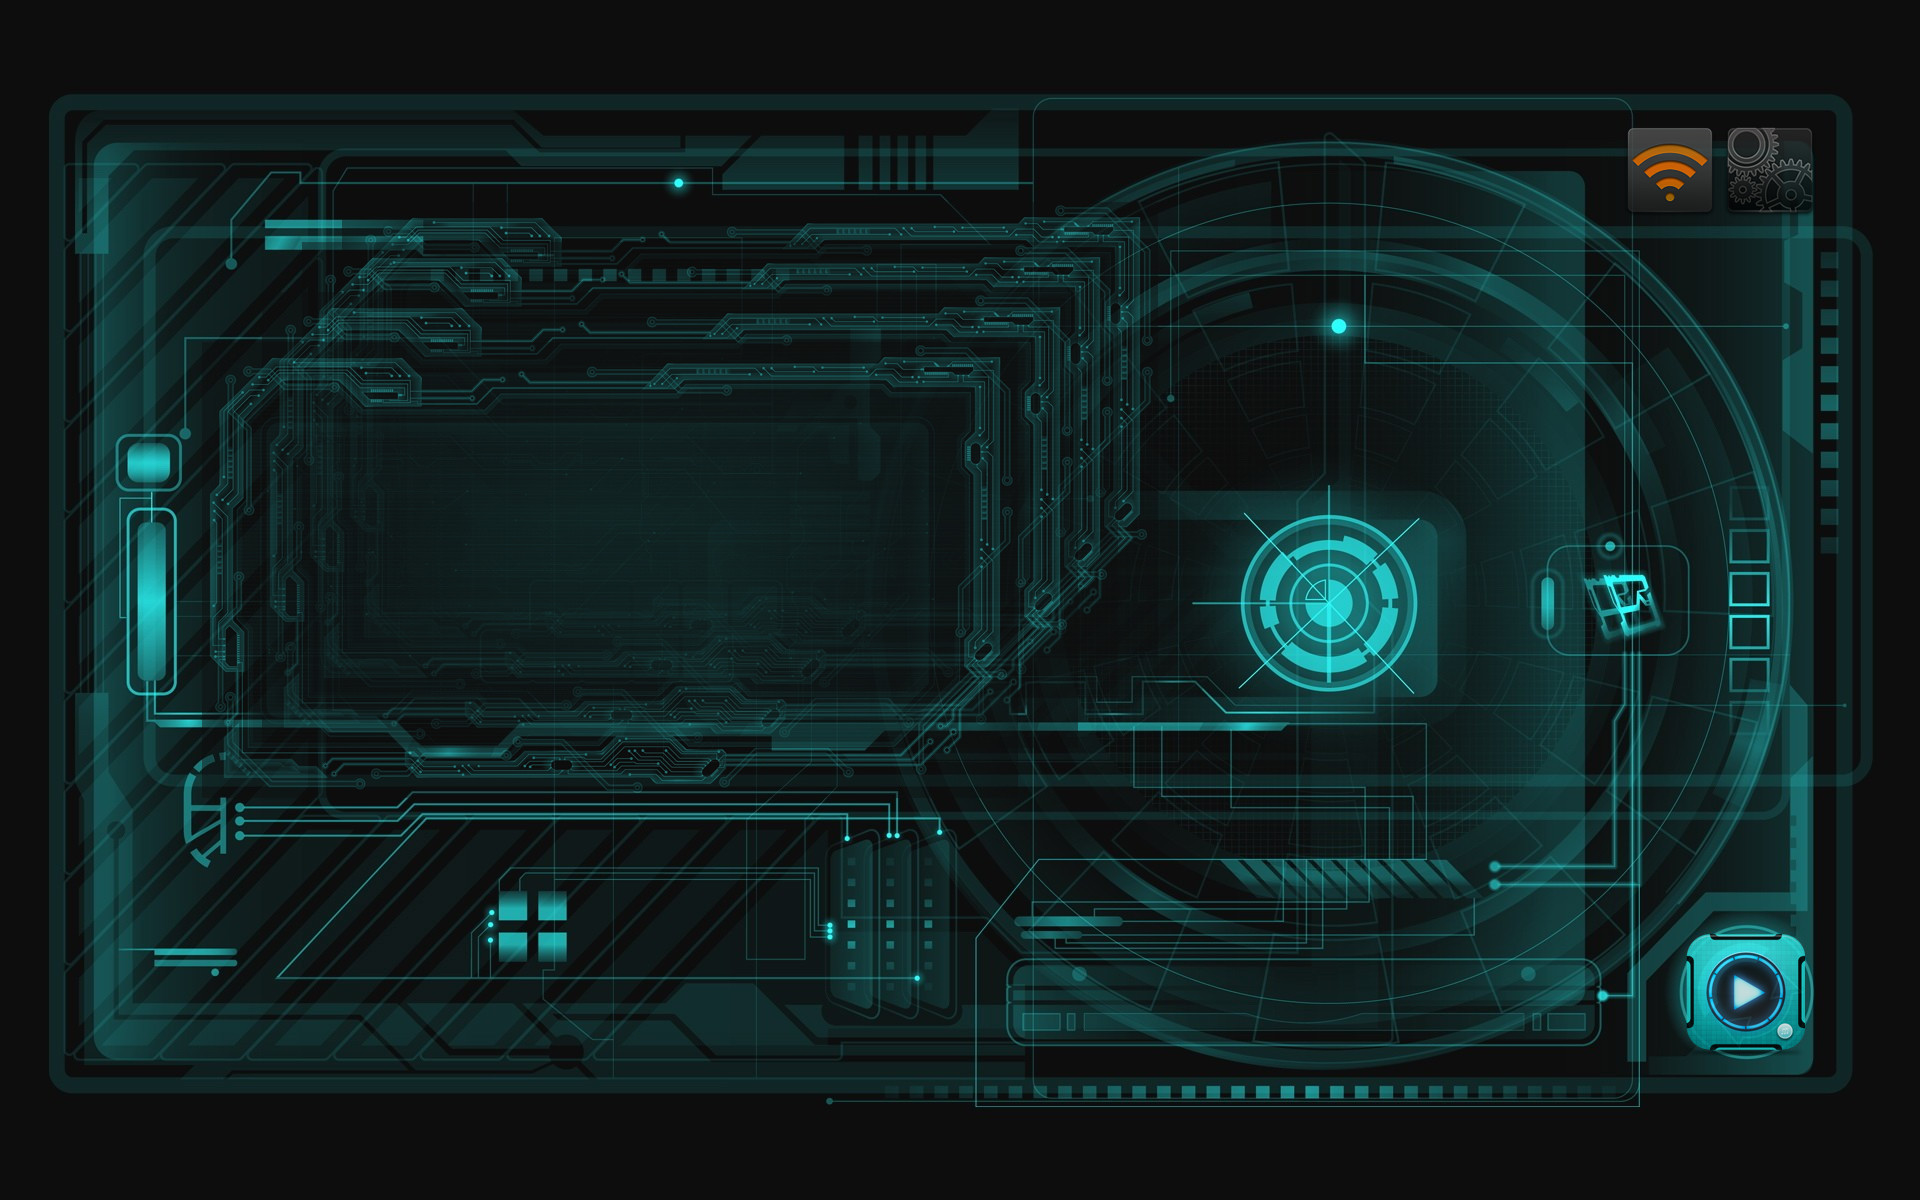 Iron Man Jarvis Wallpaper Android images   Design – Futuristic   Pinterest    Wallpapers android